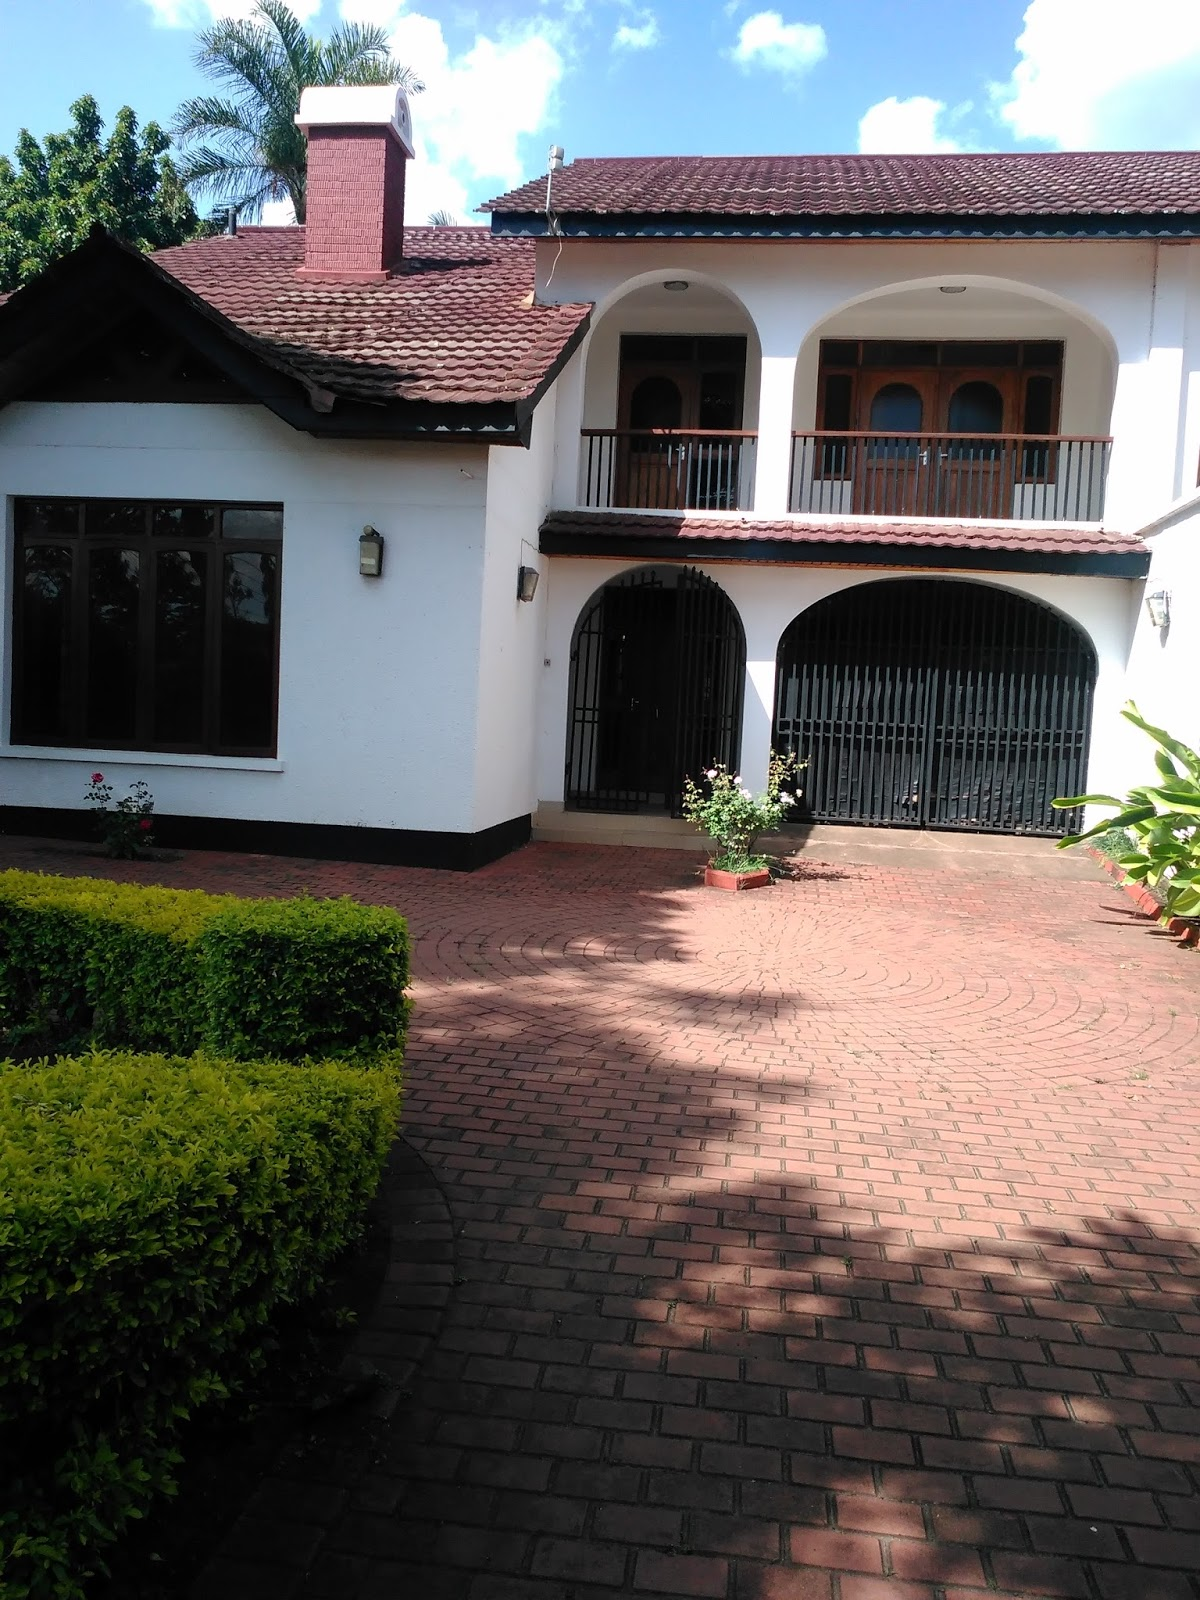 Rent House In Tanzania Arusha Rent Houses Houses For Sale Vacation Travel December 2015